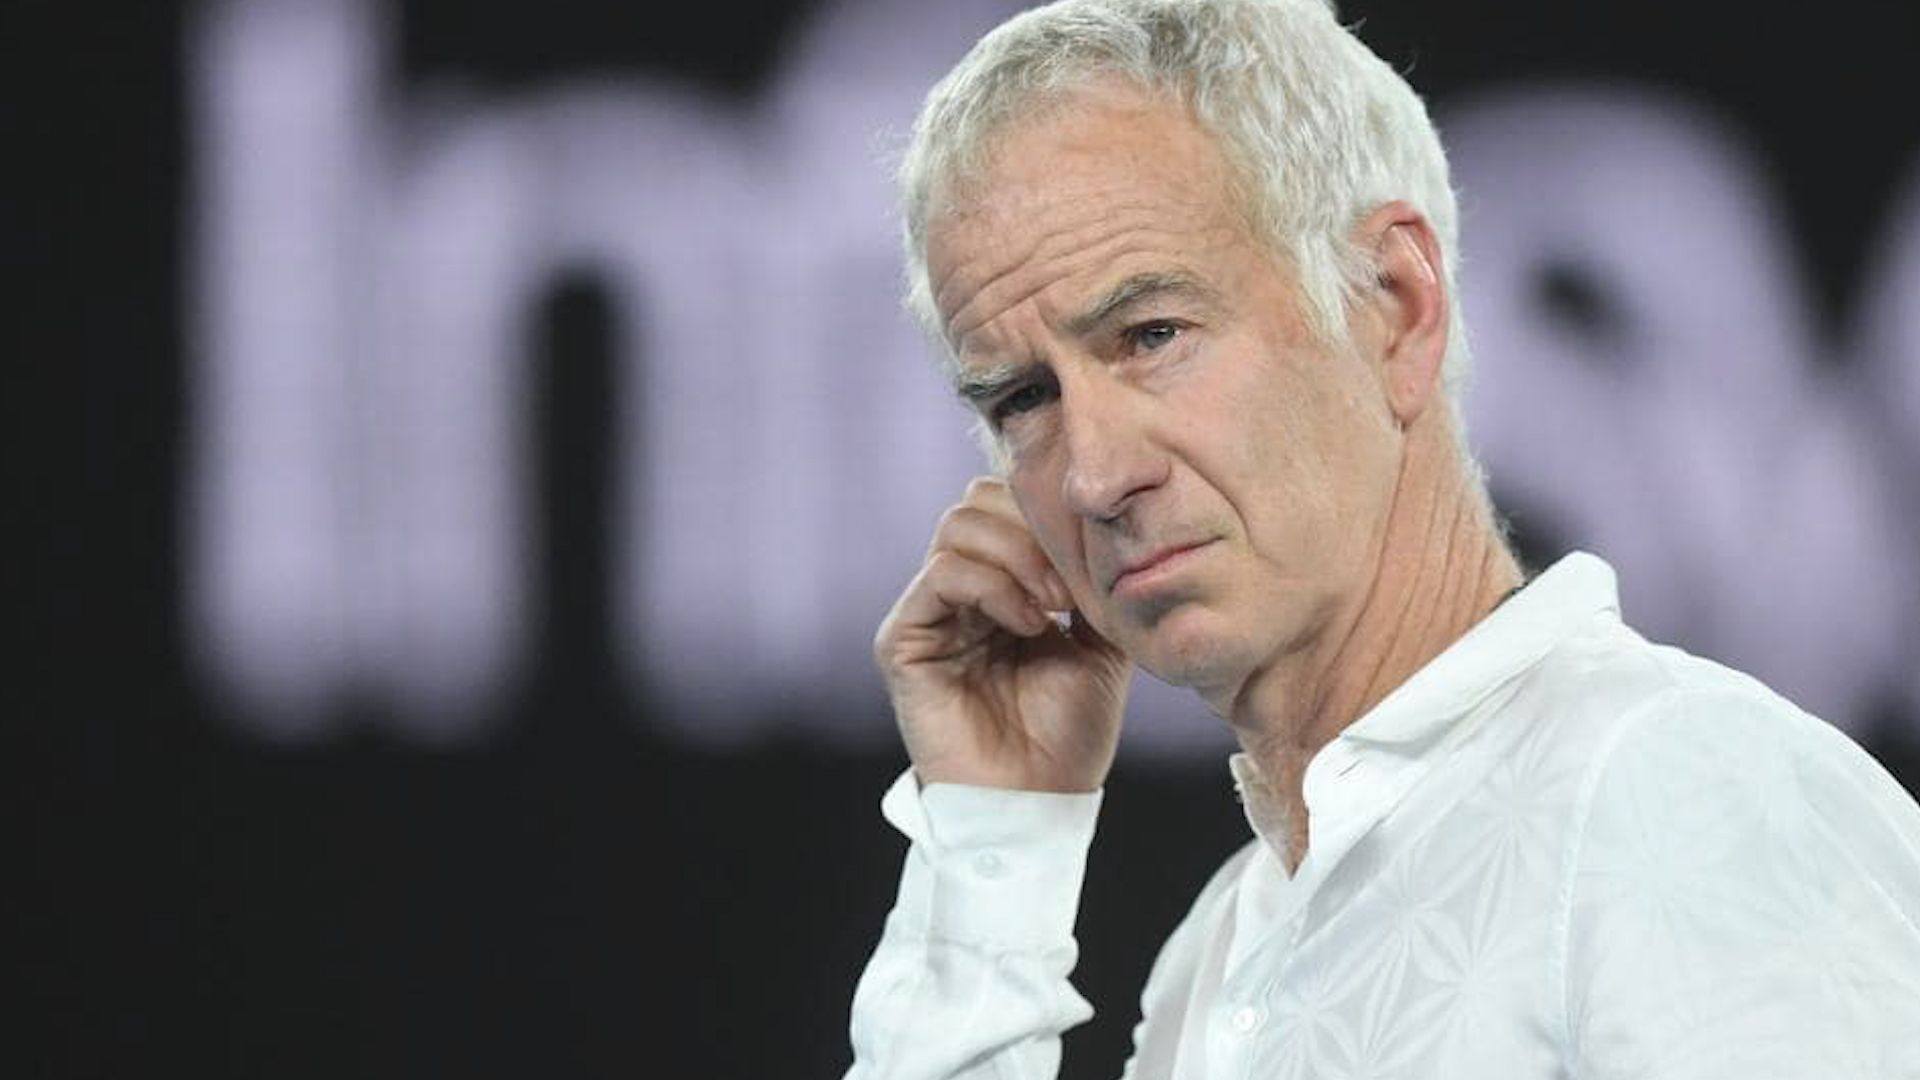 McEnroe: Biggest Disappointment